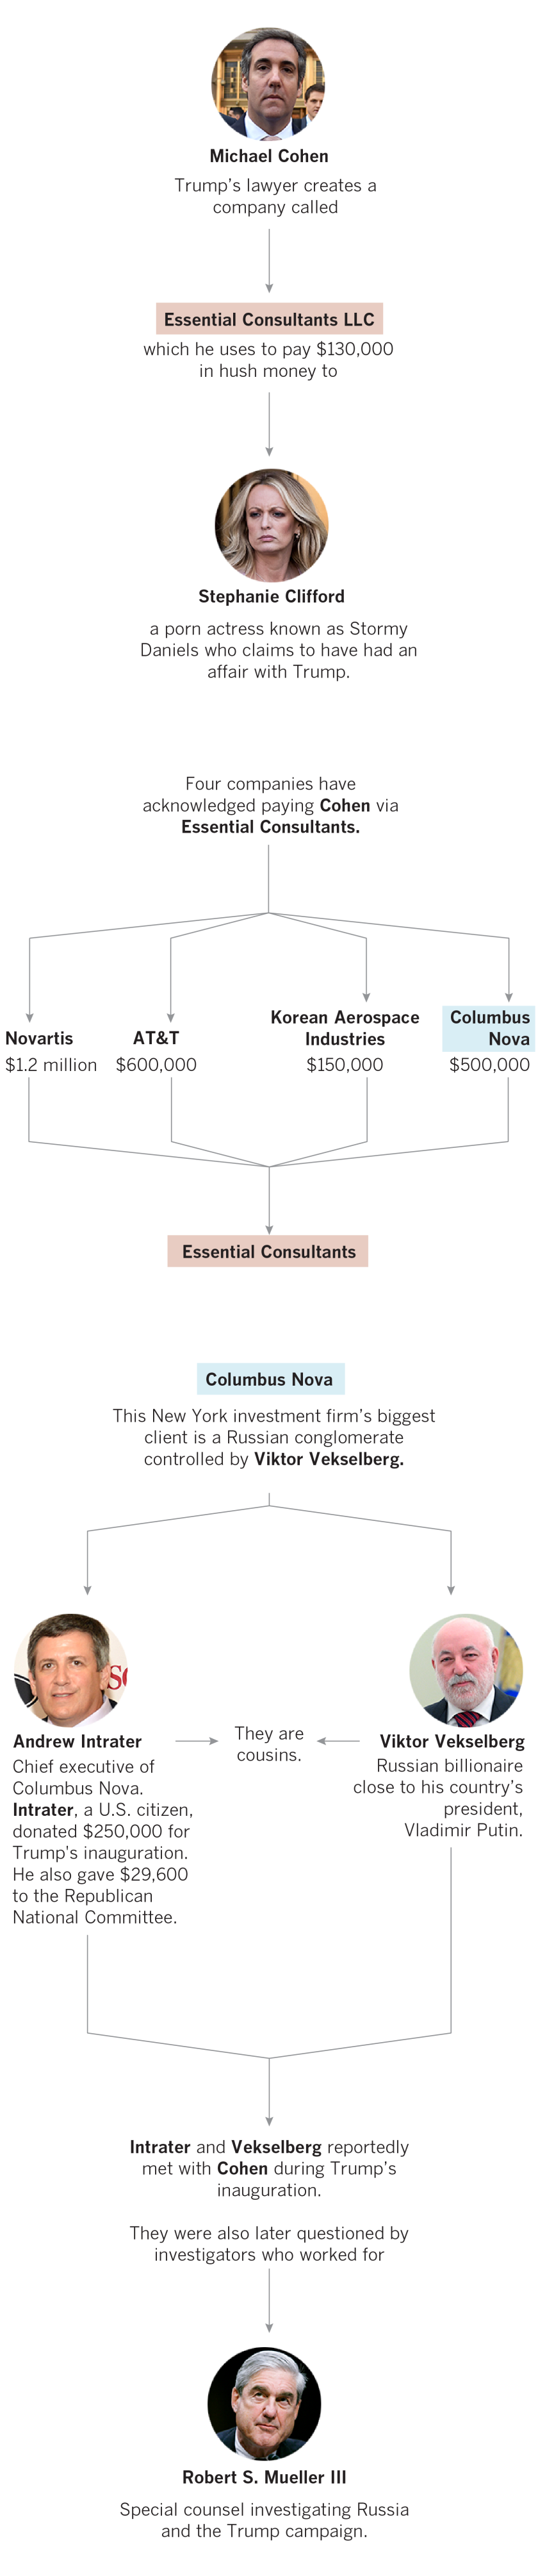 Connecting the money between Michael Cohen, Stormy Daniels and a Russian billionaire